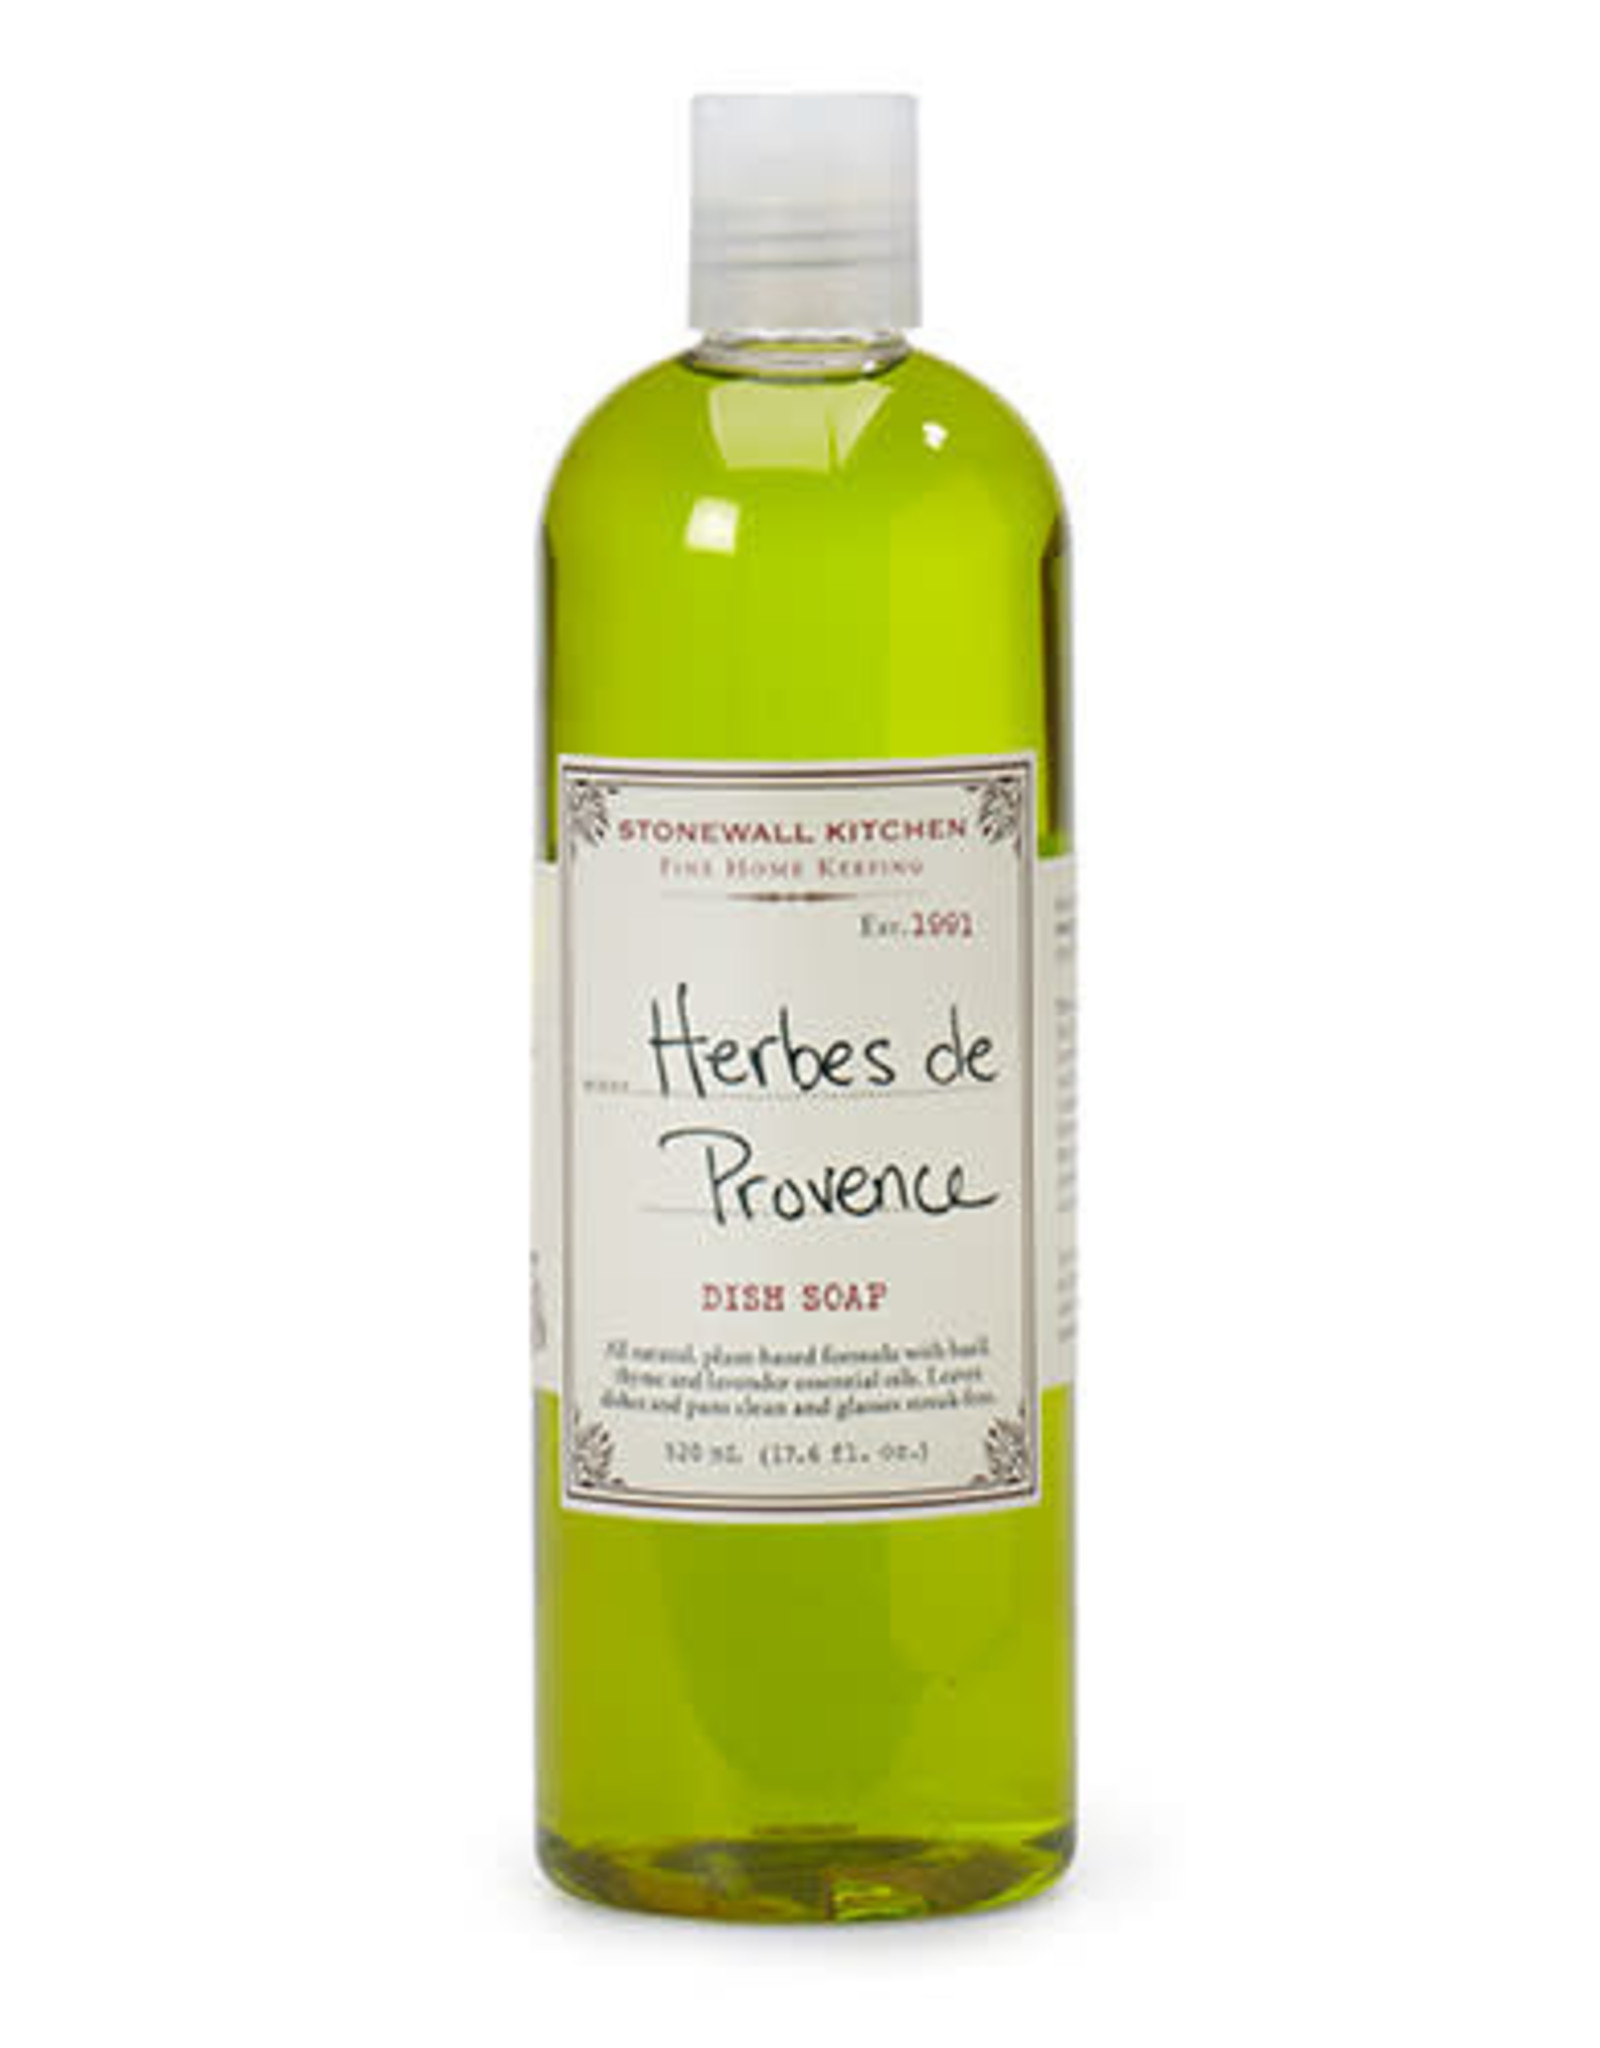 Stonewall Kitchen Herbes de Provence Dish Soap